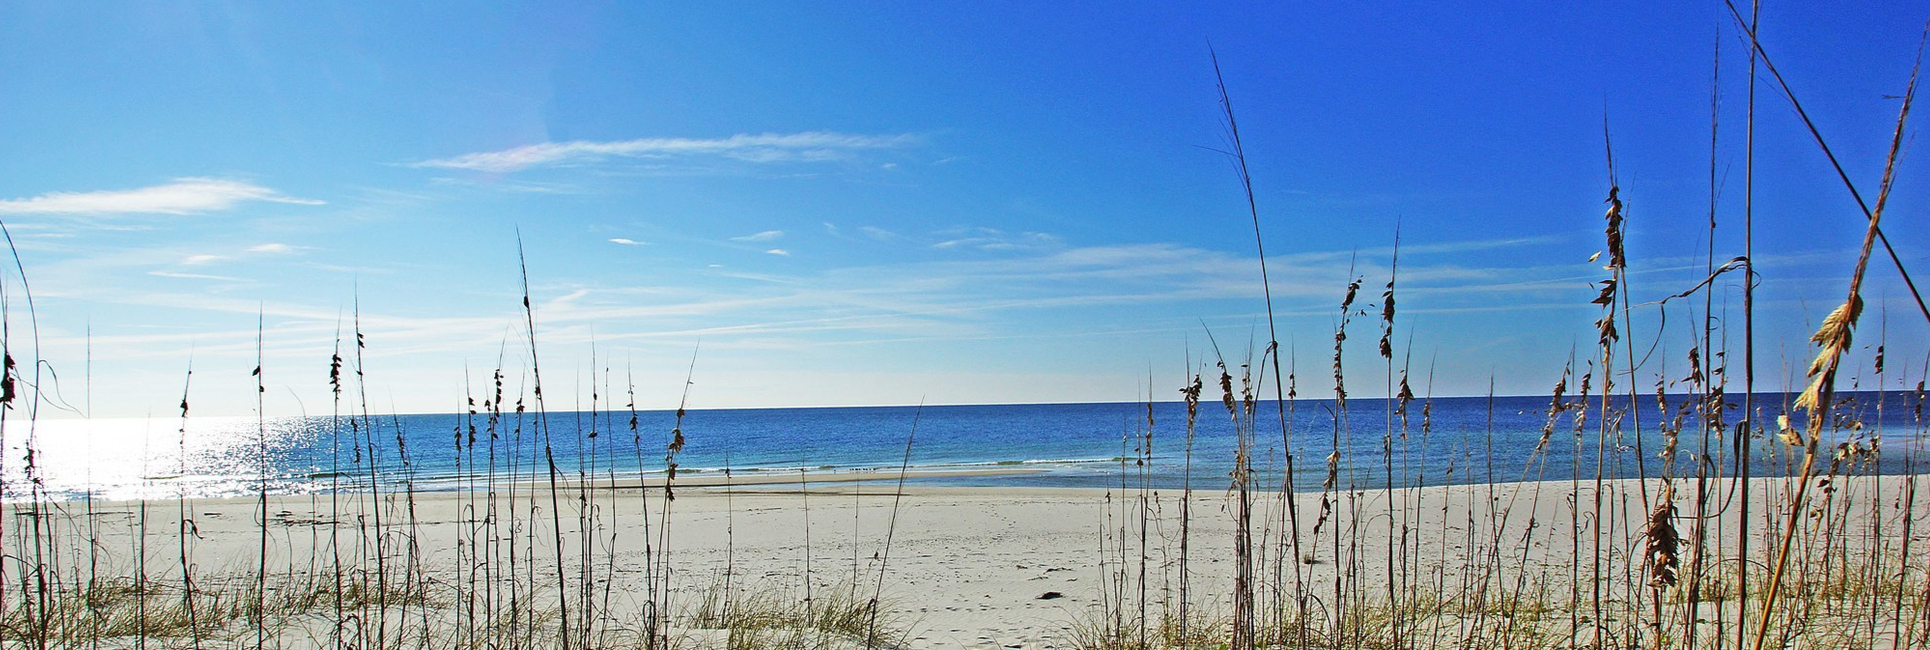 view from the shoreline of gulf shores, AL of the ocean